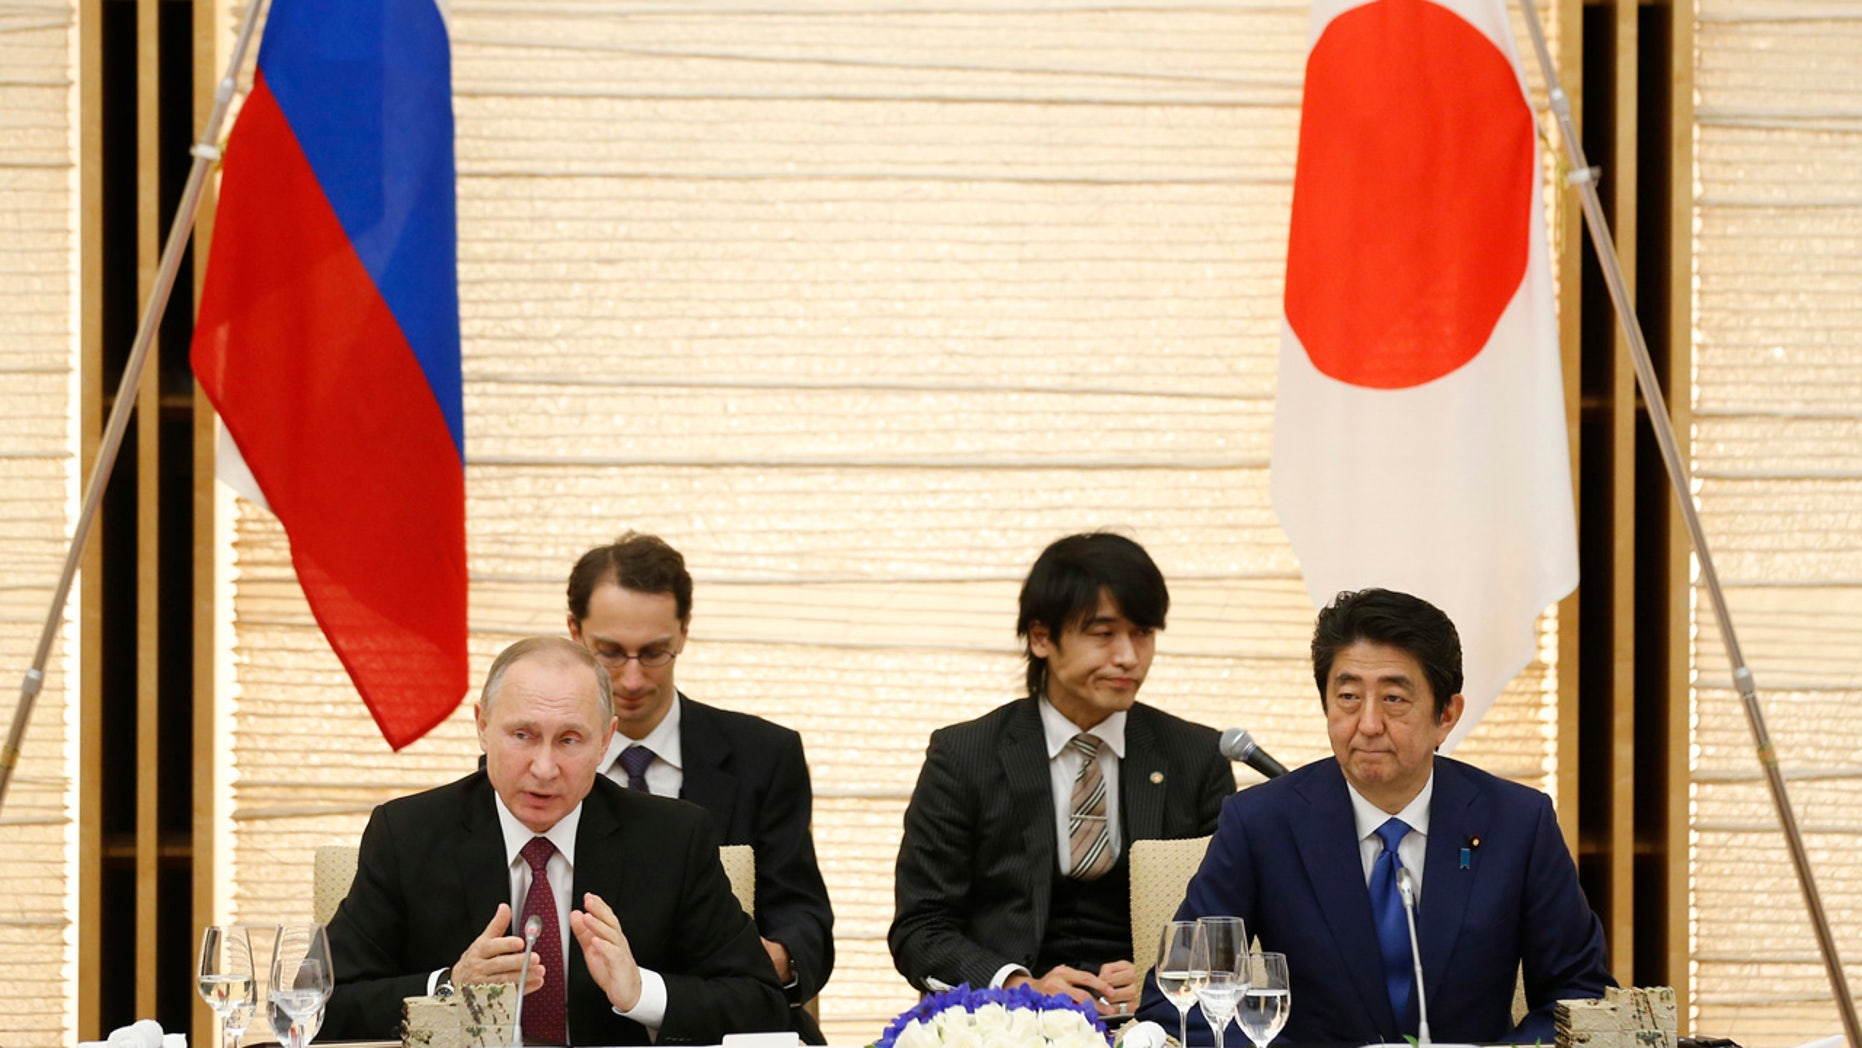 Russian President Vladimir Putin, left, and Japanese Prime Minister Shinzo Abe, right, attend a working lunch in Tokyo, Japan, Friday, Dec. 16, 2016.